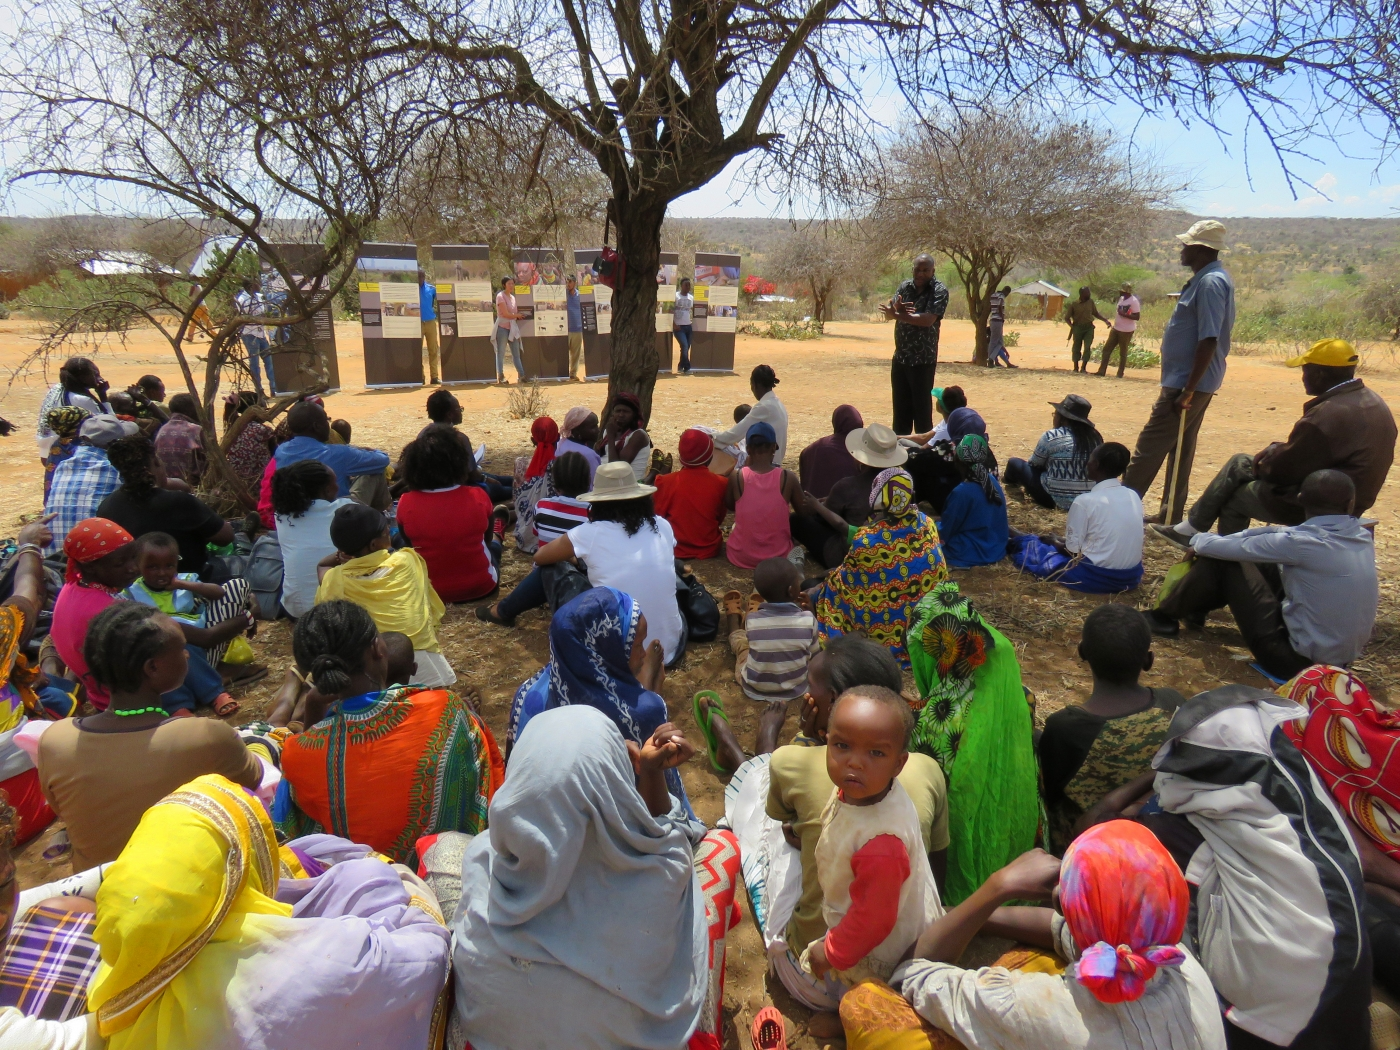 Community members in Laikipia County, Kenya, sit outside as someone gives a presentation on exhibit panels from the mobile Outbreak DIY exhibit.